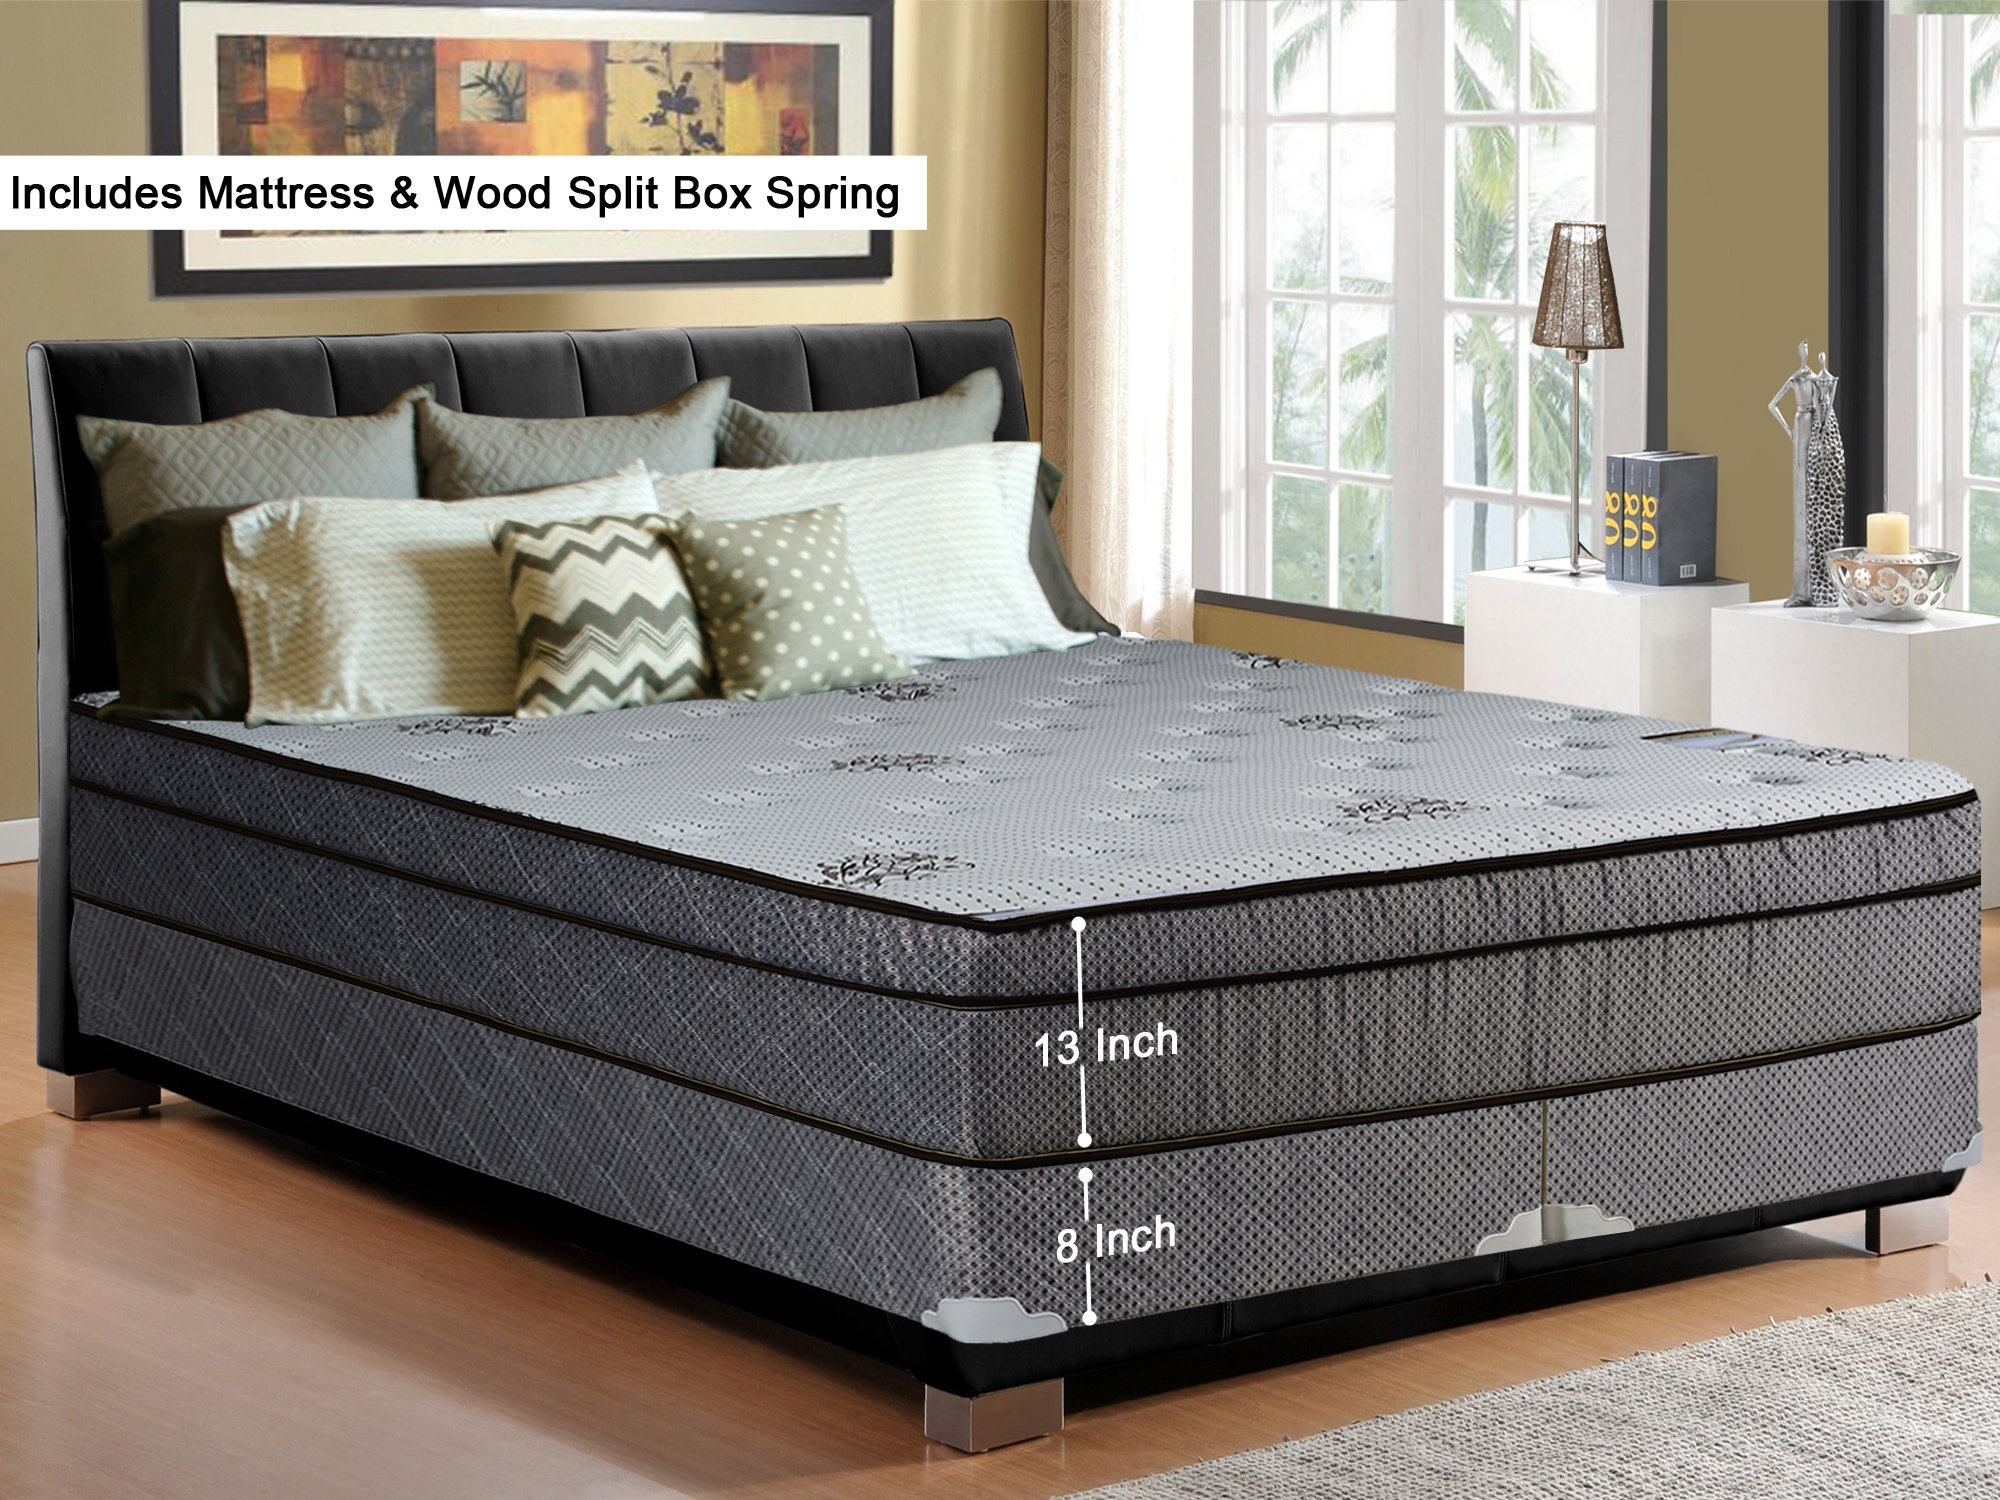 Continental Sleep, 13-Inch Soft Foam Encased Hybrid Eurotop Pillowtop Innerspring Mattress And Wood Traditional Box Spring/Foundation Set, King Size 79'' x 78''